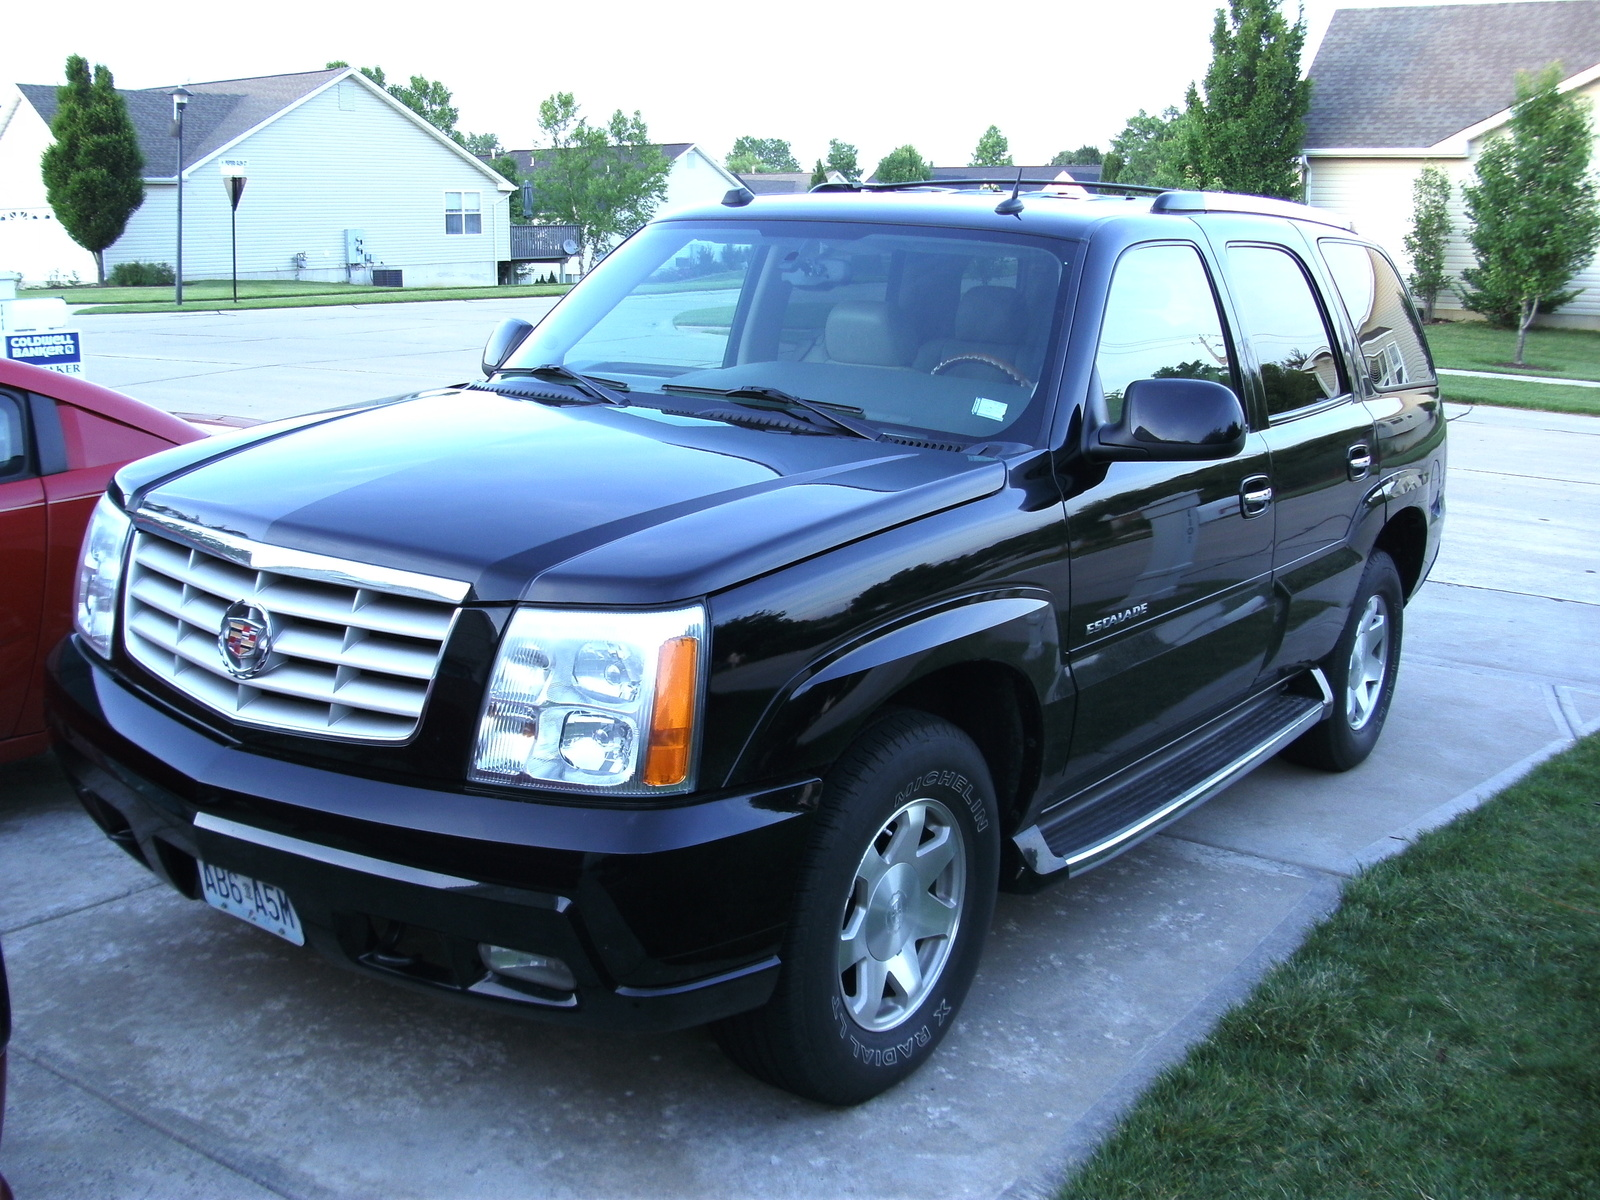 2004 cadillac escalade information and photos momentcar. Black Bedroom Furniture Sets. Home Design Ideas